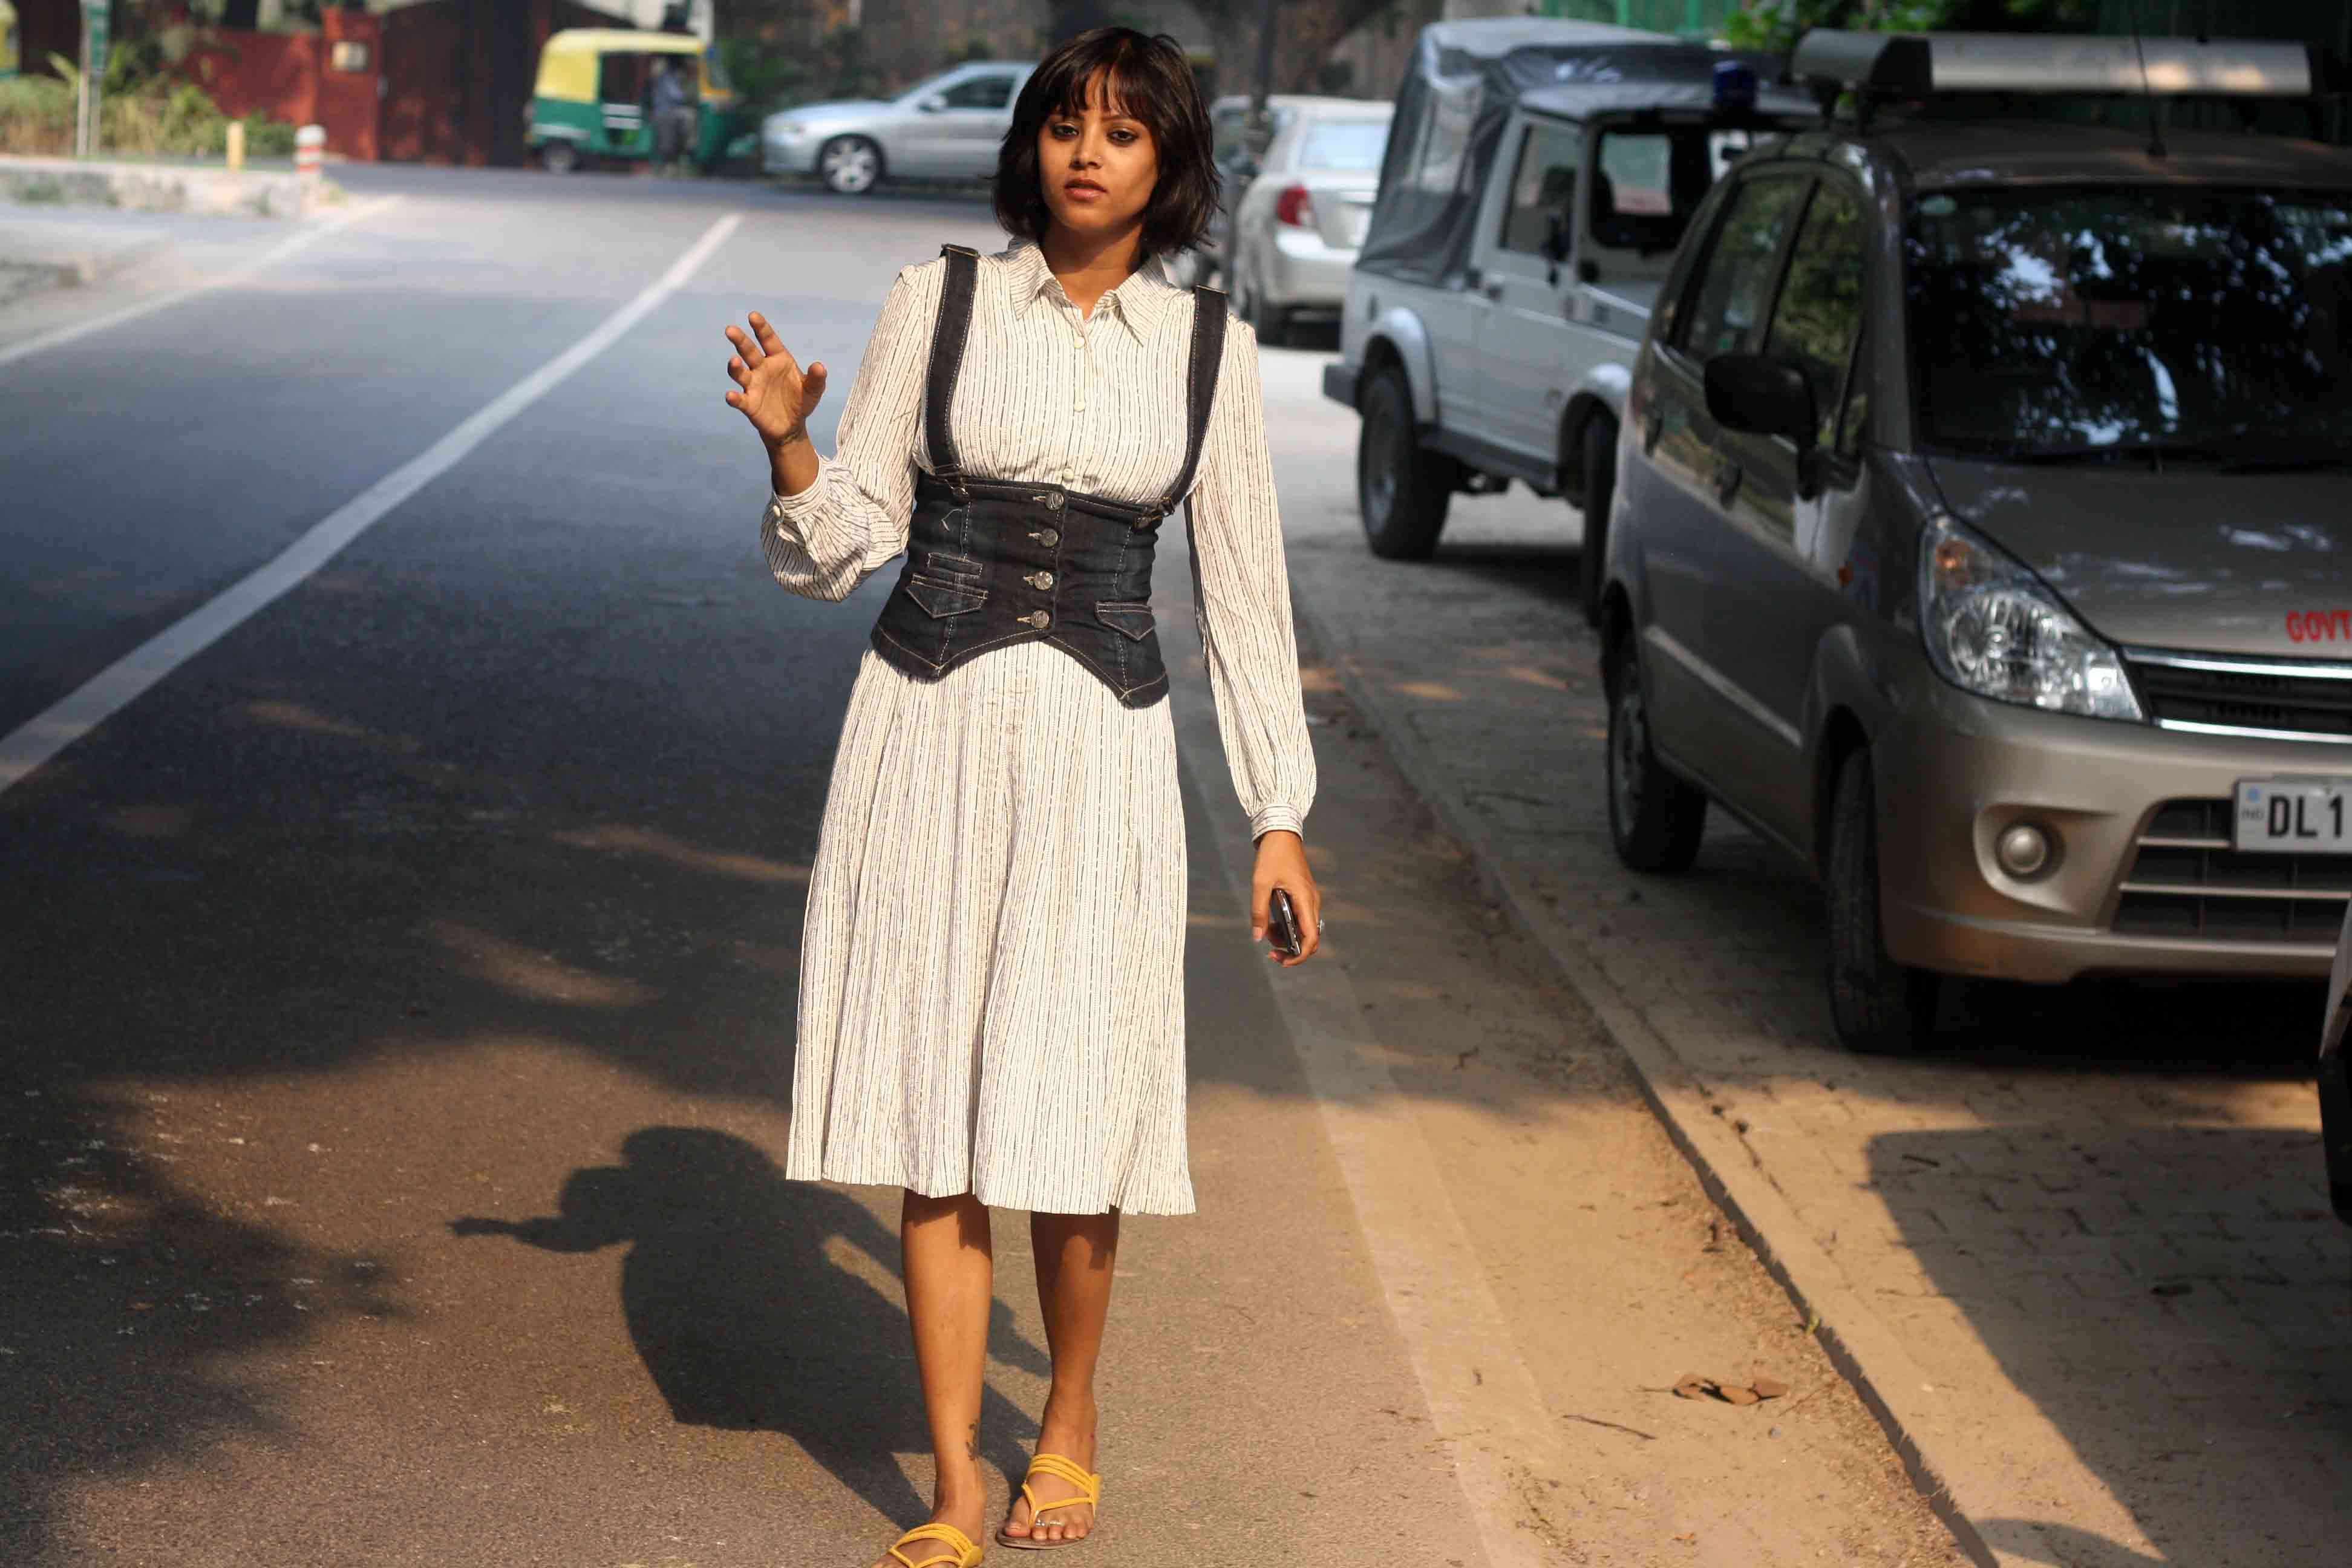 City Style - A Slender Woman in White, Harish Chander Mathur Lane